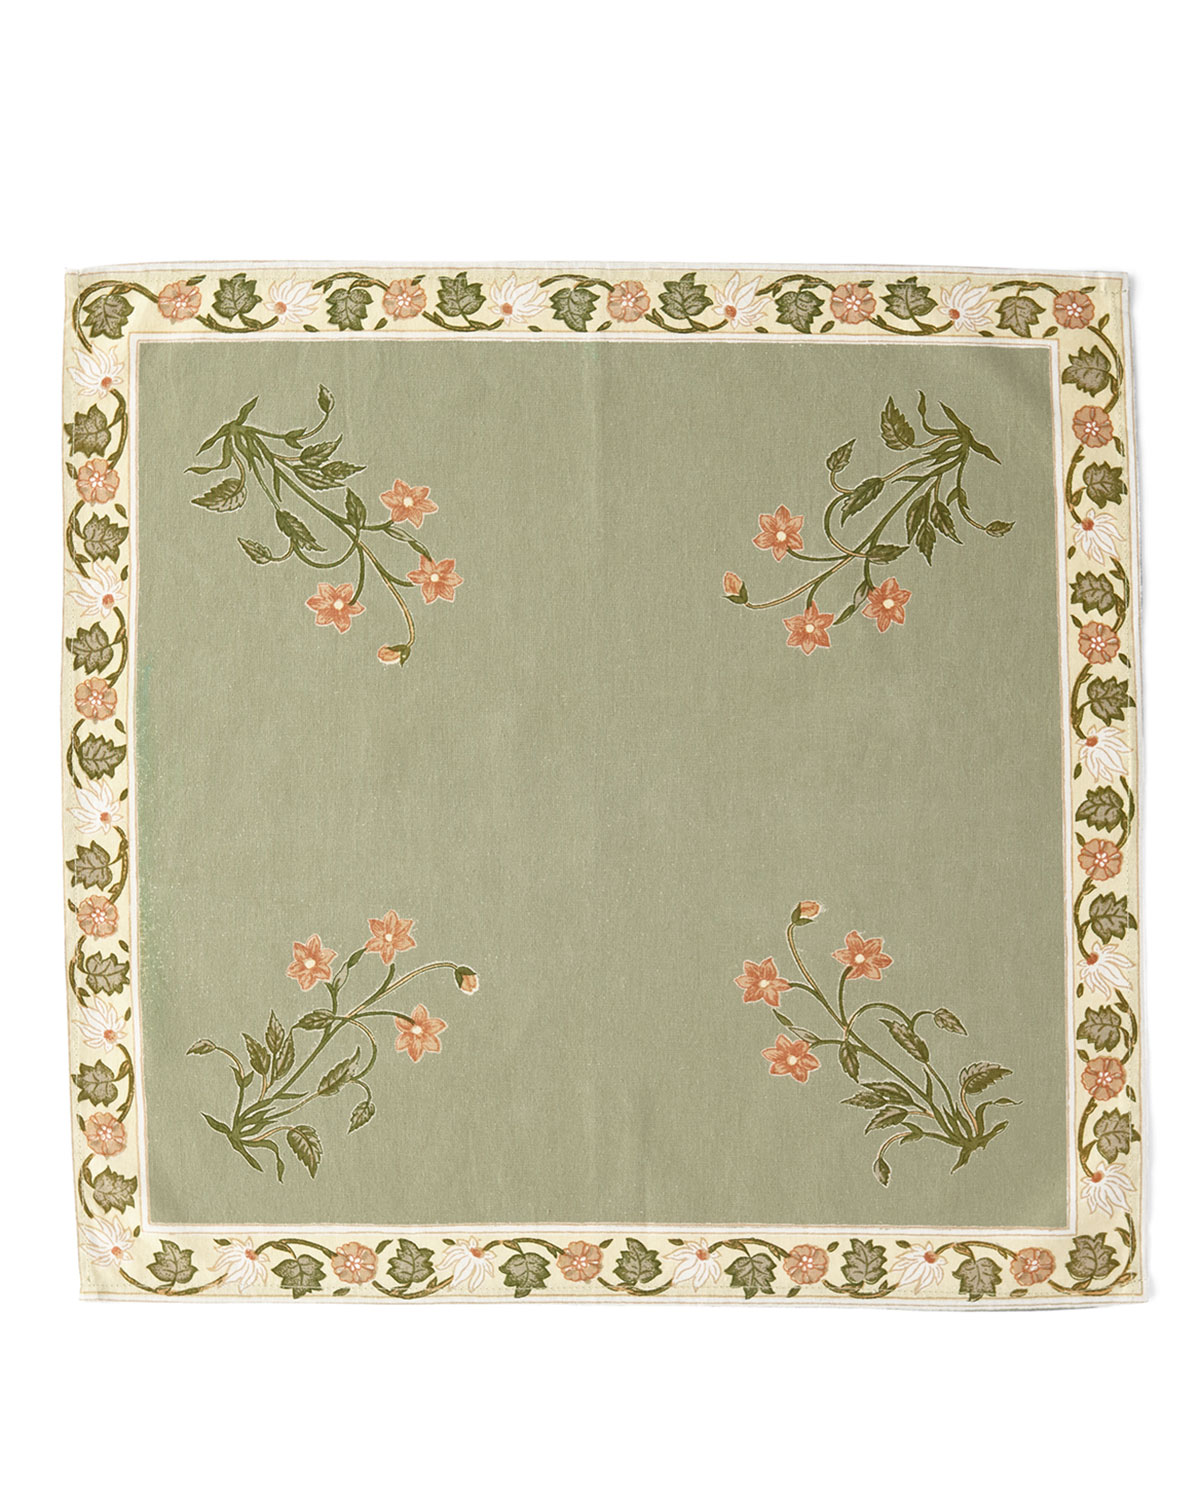 Handprint Garden Sage Napkins, Set of 4